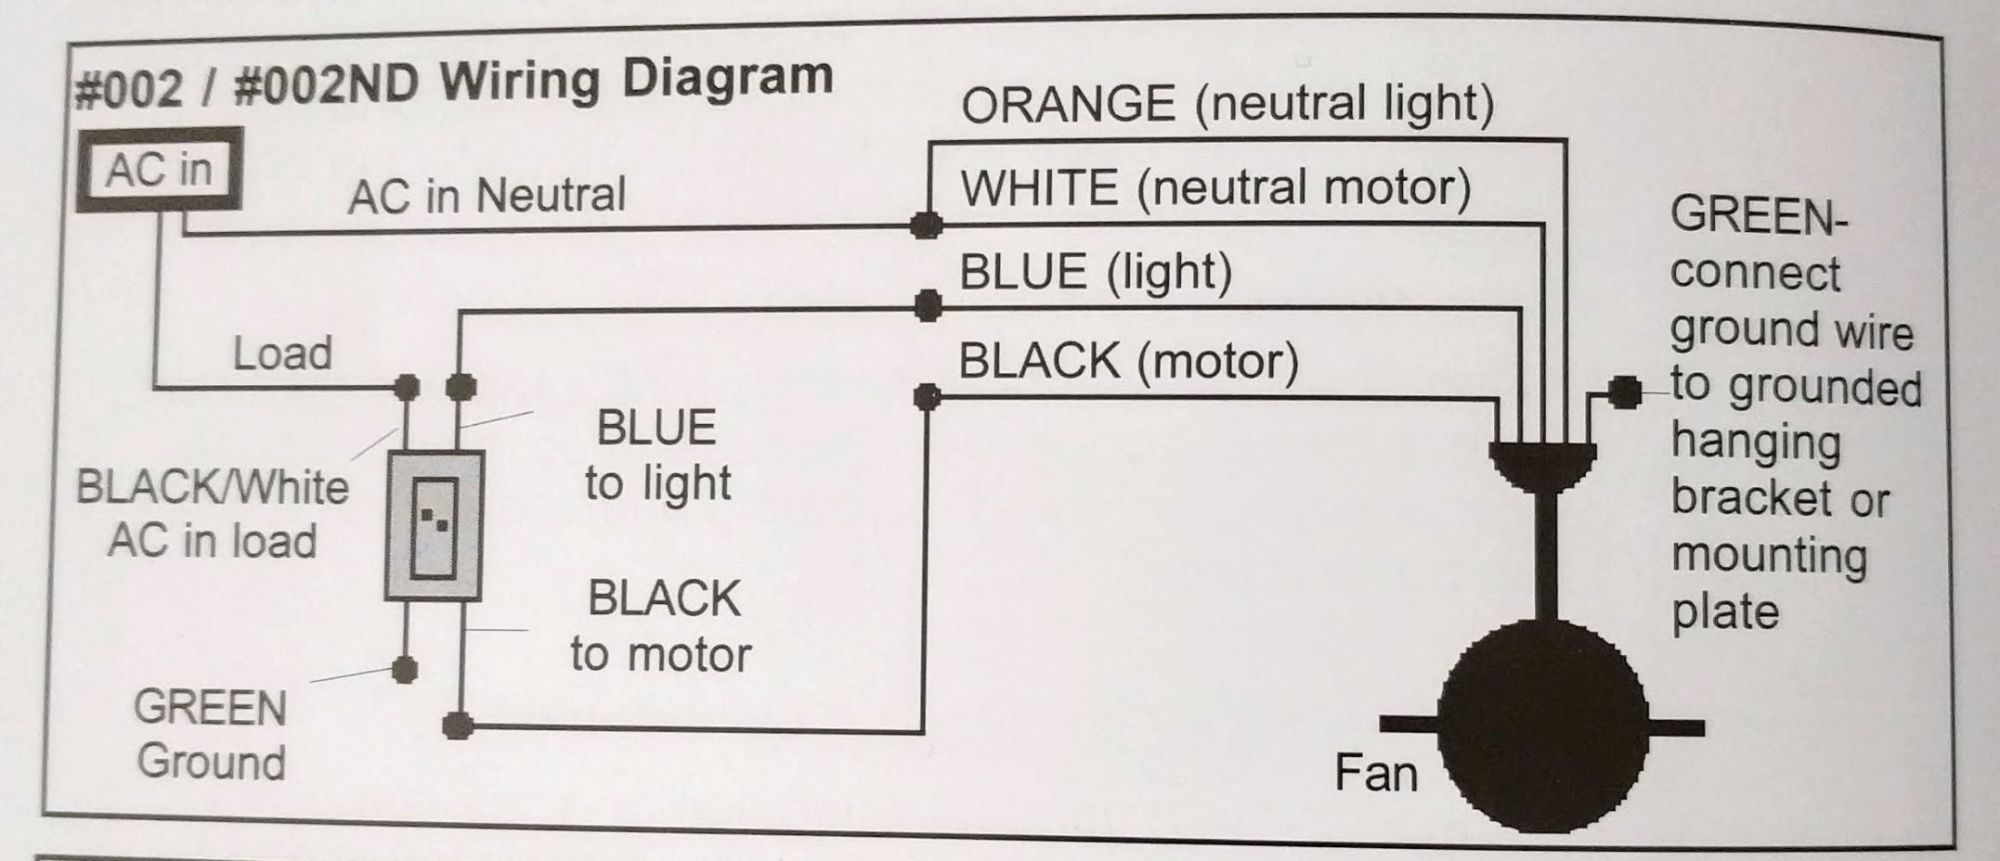 hight resolution of ceiling fan w two wall switches and too many wires diagram included ceiling fan w two wall switches and too many wires diagram included